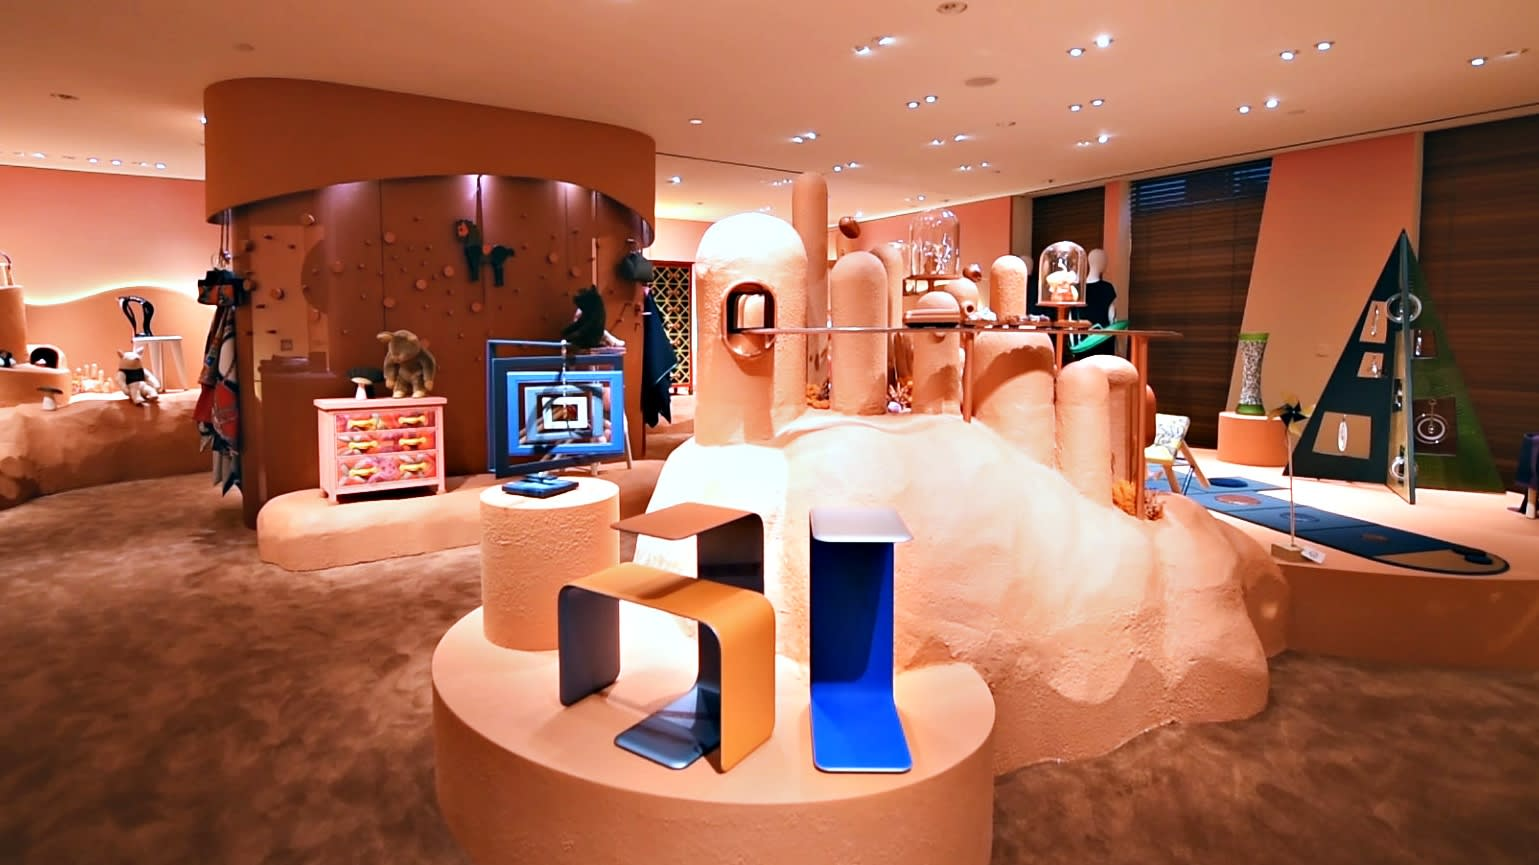 Hermes' whimsical petit h exhibit in Singapore | CNA Luxury